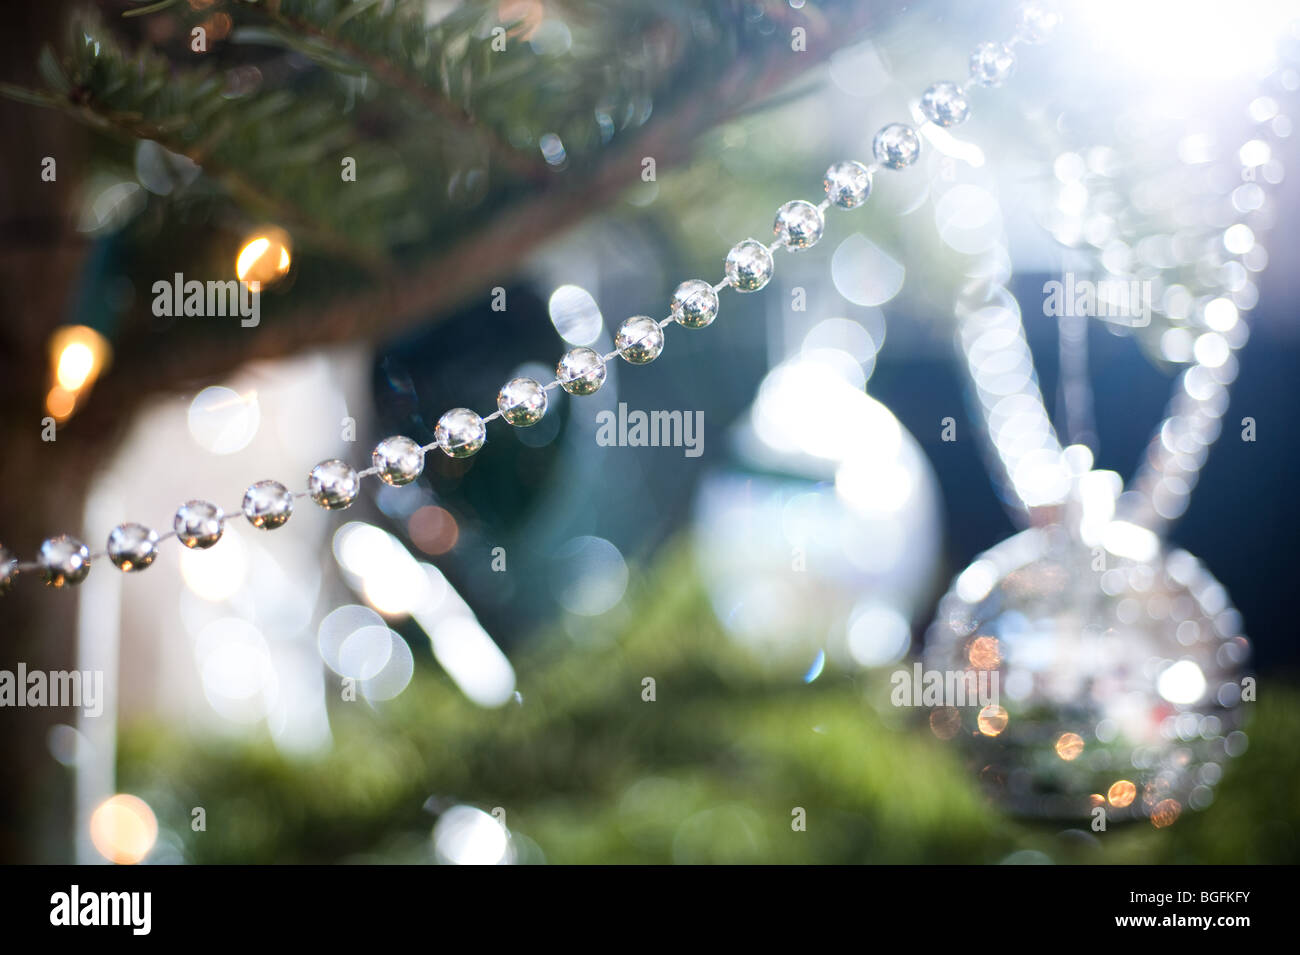 A length of silver decorative beading is draped on a pine Christmas tree, with a collection of other decorations - Stock Image